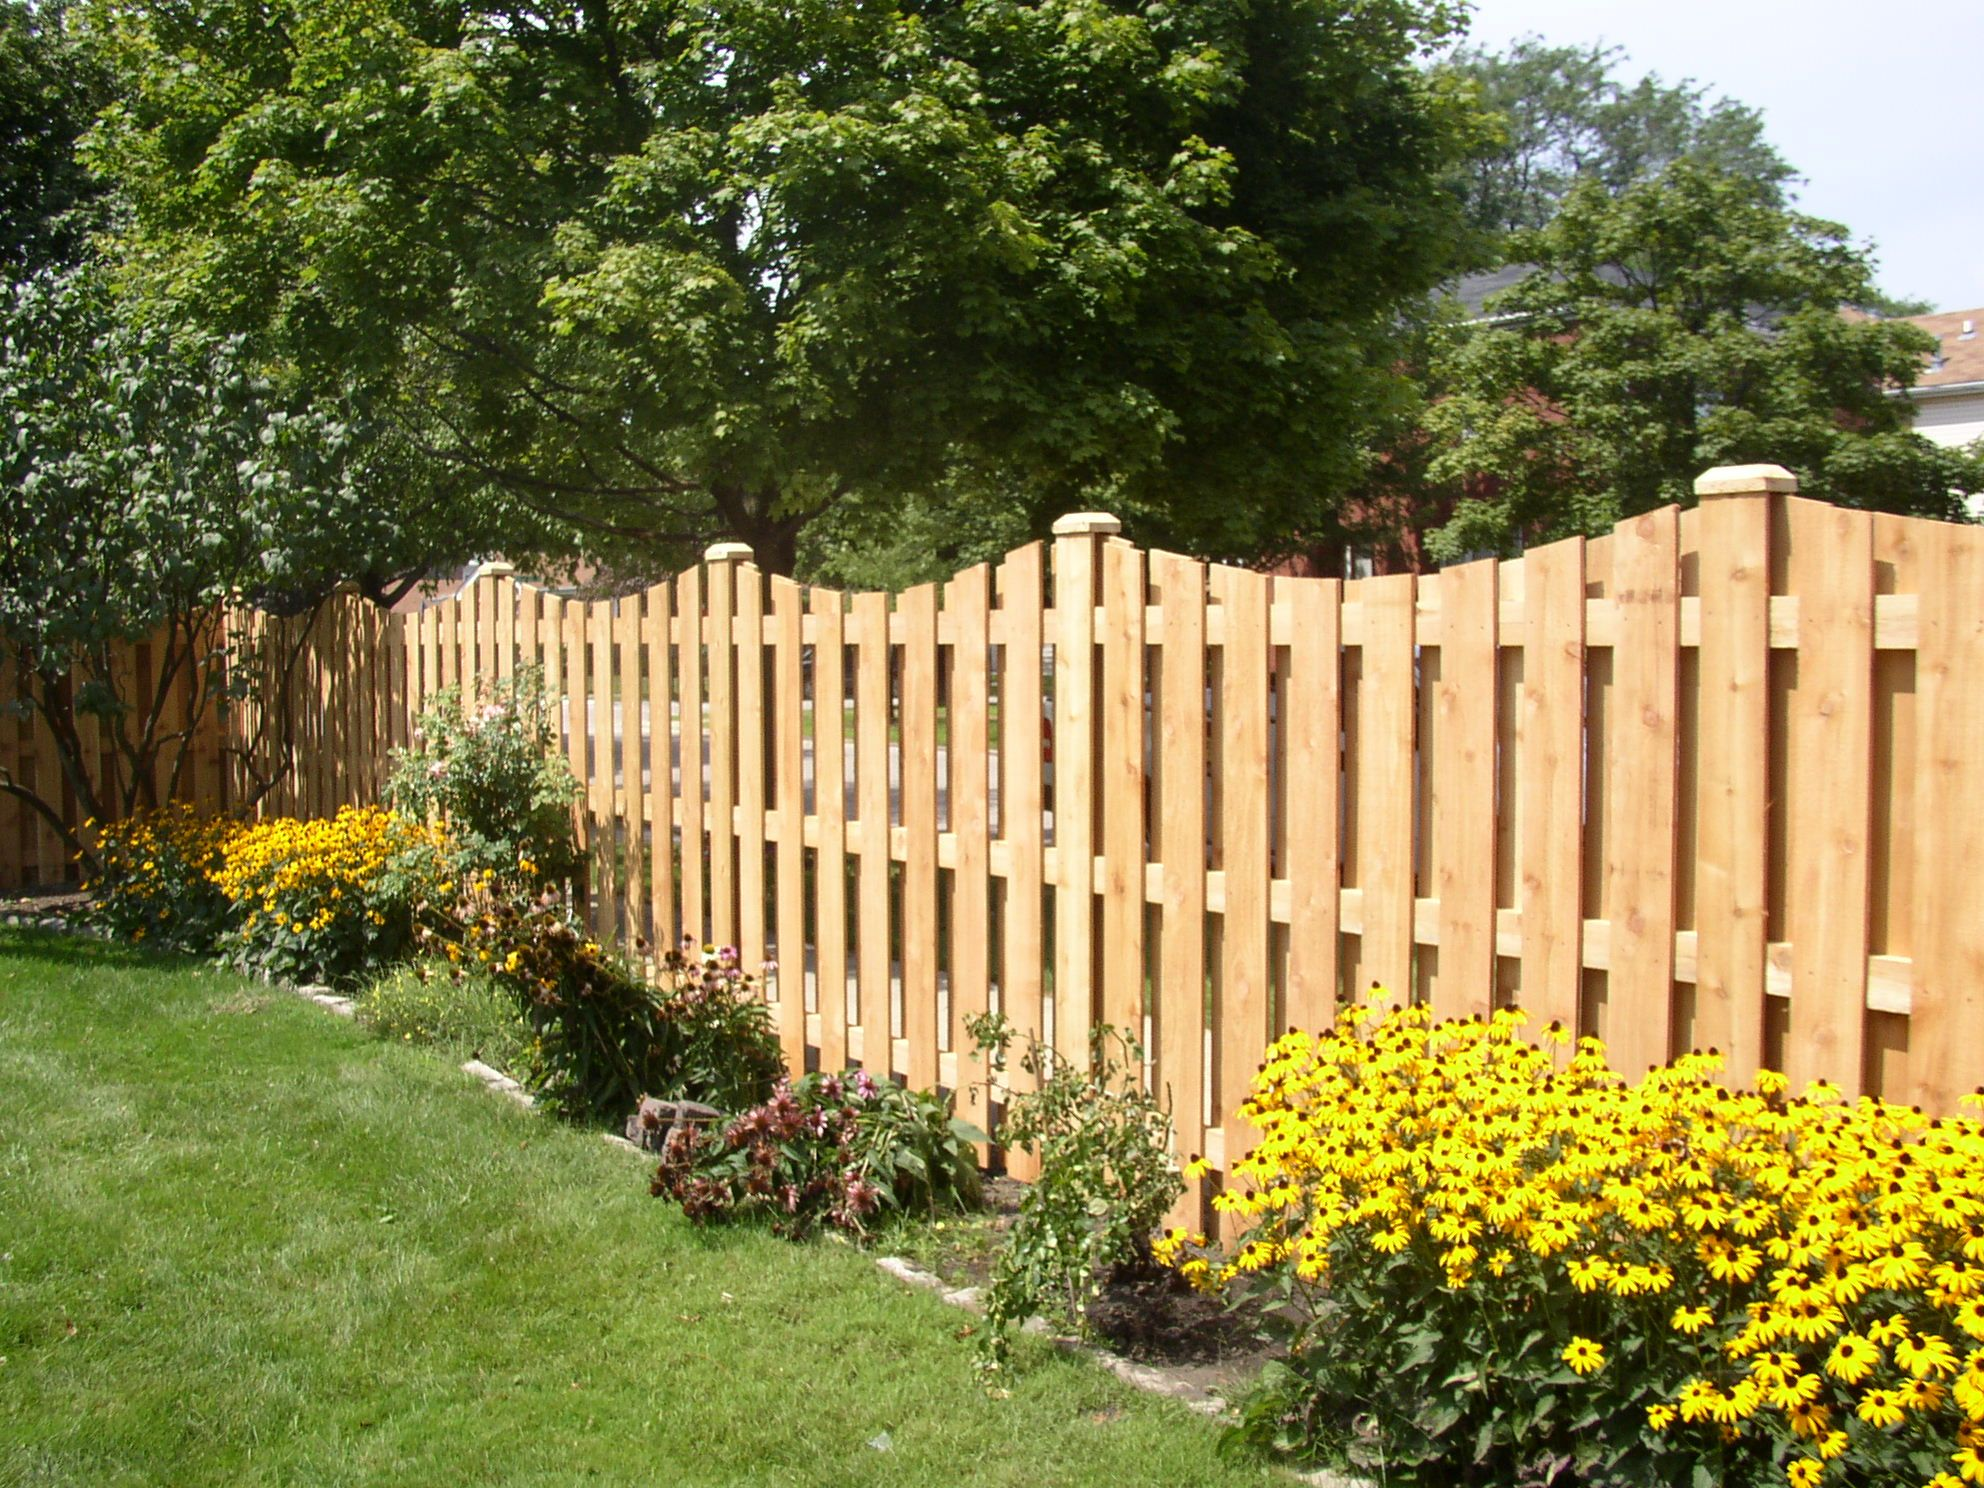 30 best wood fencing ideas images on pinterest privacy fences build privacy fence styles wood privacy fence styles and designs baanklon Gallery